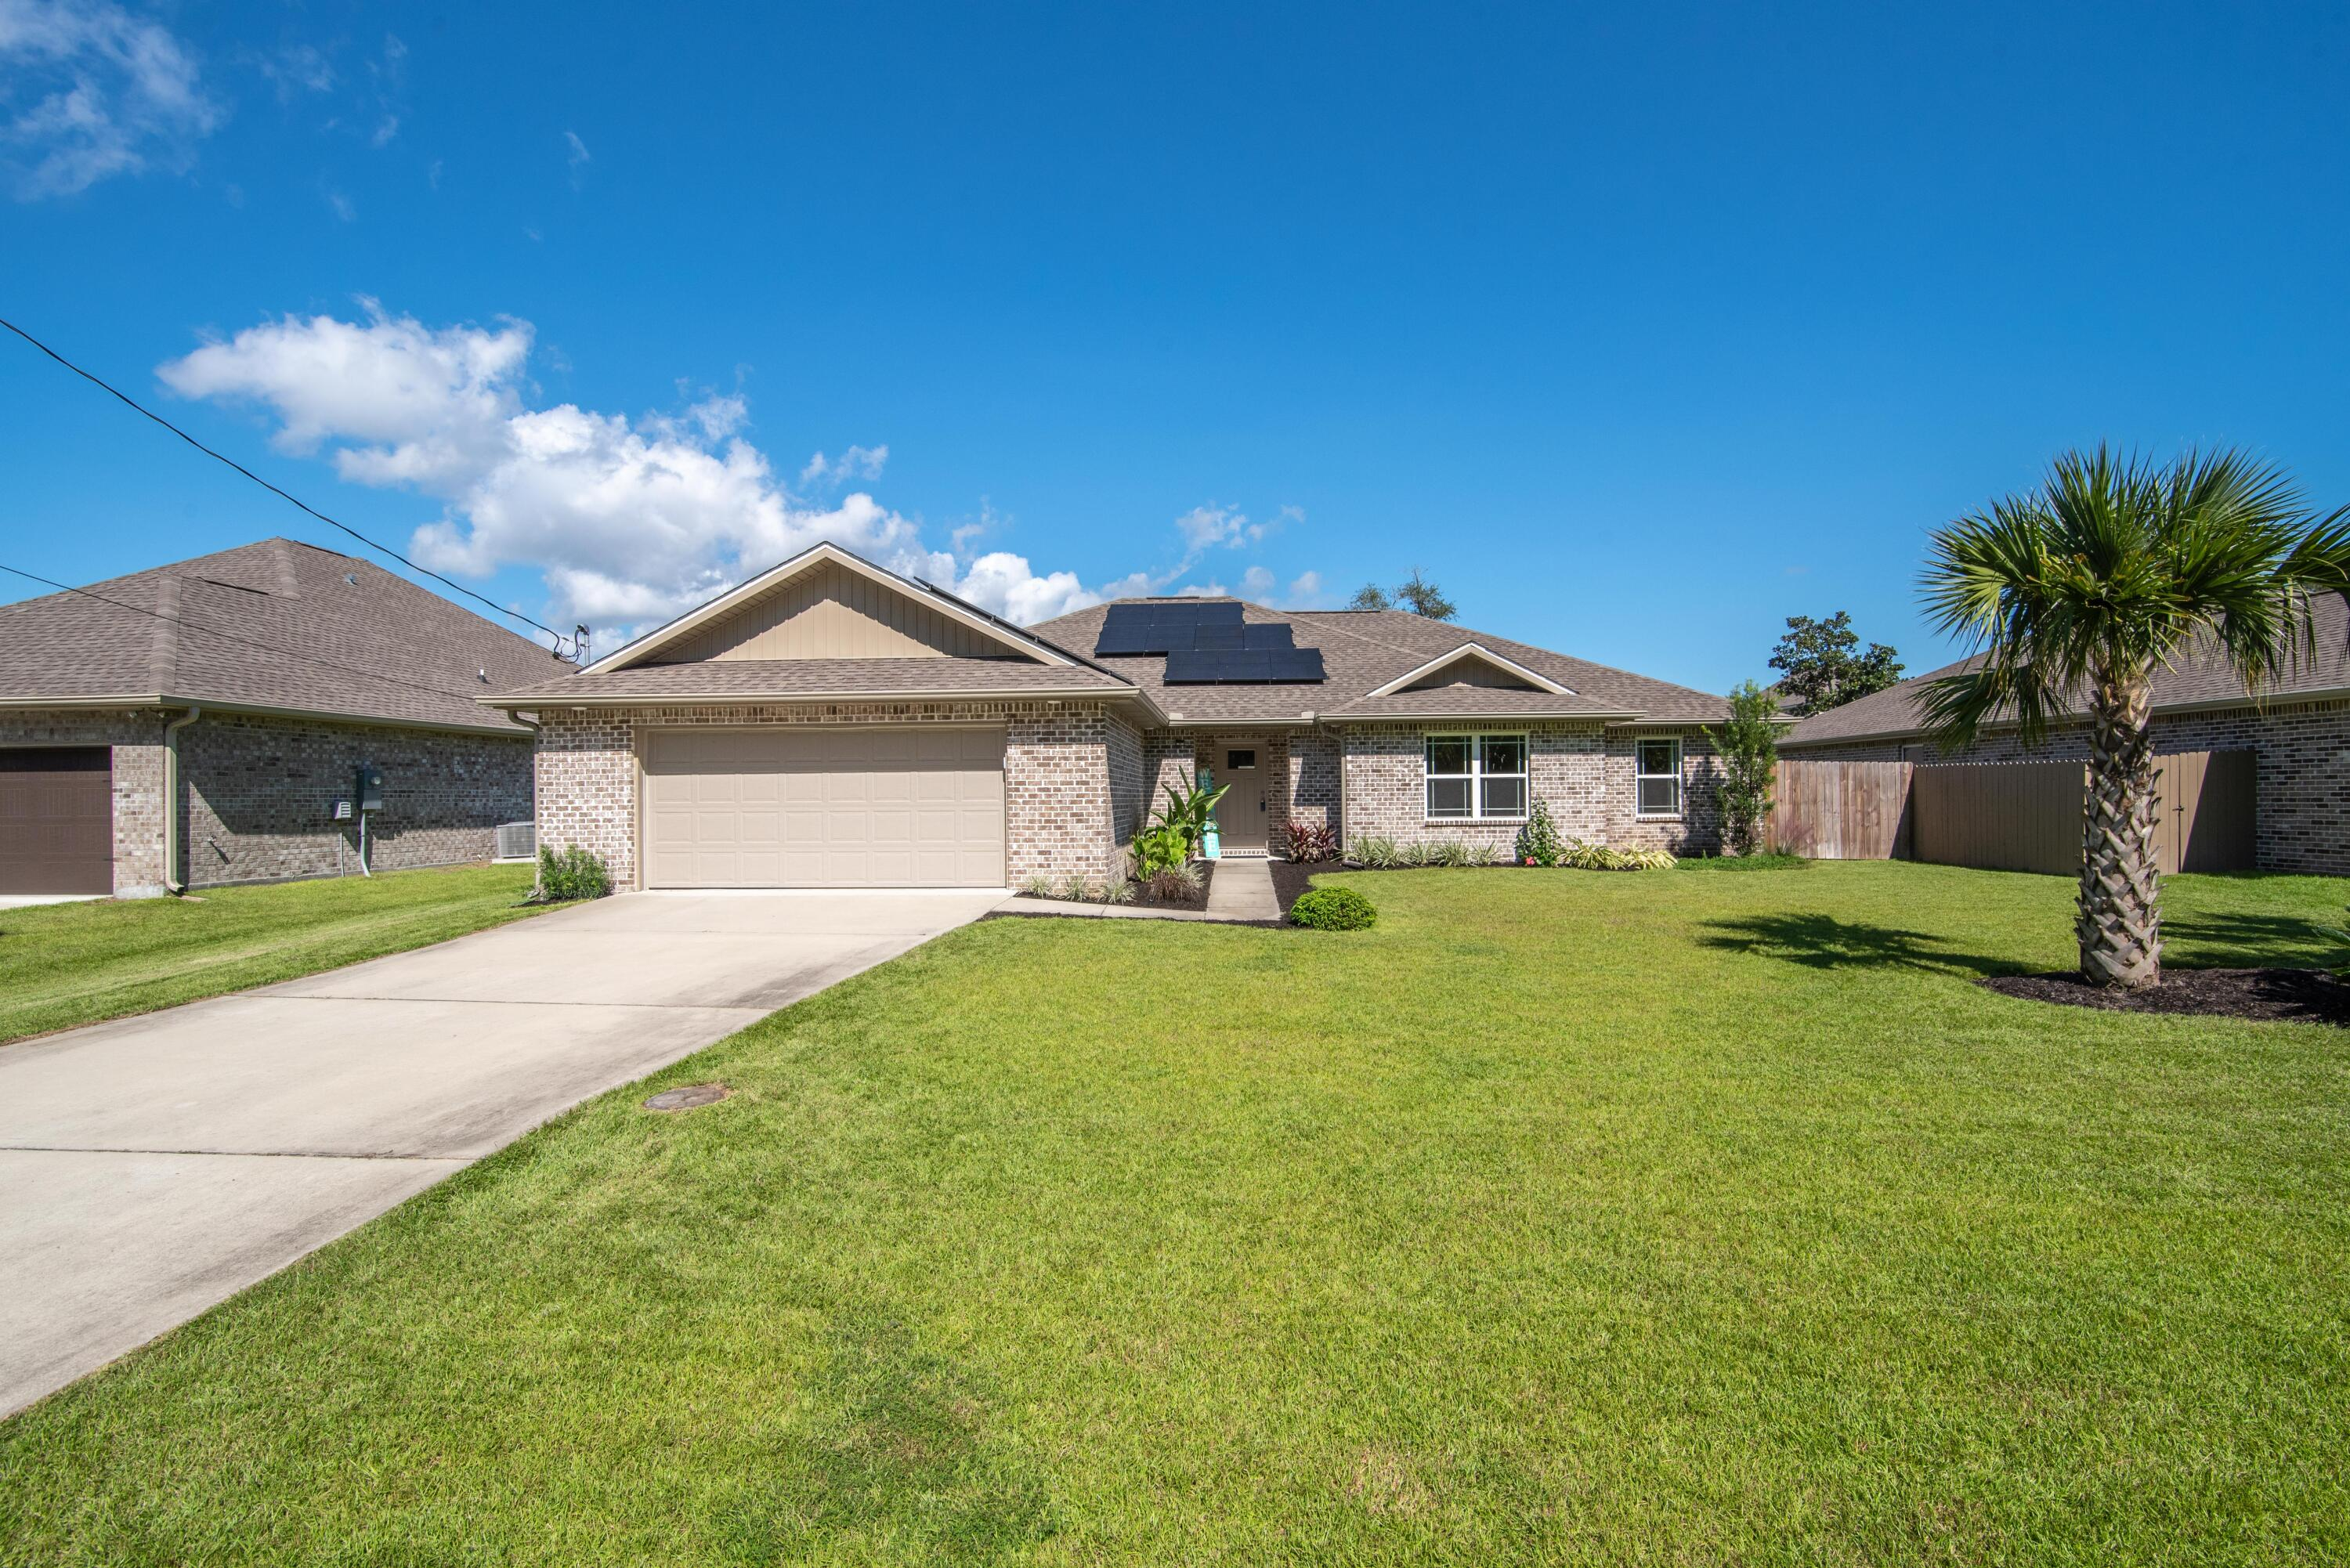 Built in 2018, this perfectly maintained home offers a BRAND NEW saltwater swimming pool with a covered patio, an open spacious floor plan with vaulted ceilings making the perfect space to entertain guests. You'll rest easy with Kevlar hurricane coverings, termite bond and RING doorbell. The kitchen comes equipped with stainless steel appliances, granite countertops, fridge with ice and water dispenser, built-in microwave with an electric cooktop. You'll also enjoy the large island providing seating for 4 and the over-sized pantry providing ample storage. The spacious primary suite has a tray ceiling and the bathroom has a double granite vanity with a large tiled walk-in shower, garden tub, water closet and dual walk-in closets with pocket doors. The 3 additional bedrooms are located on th